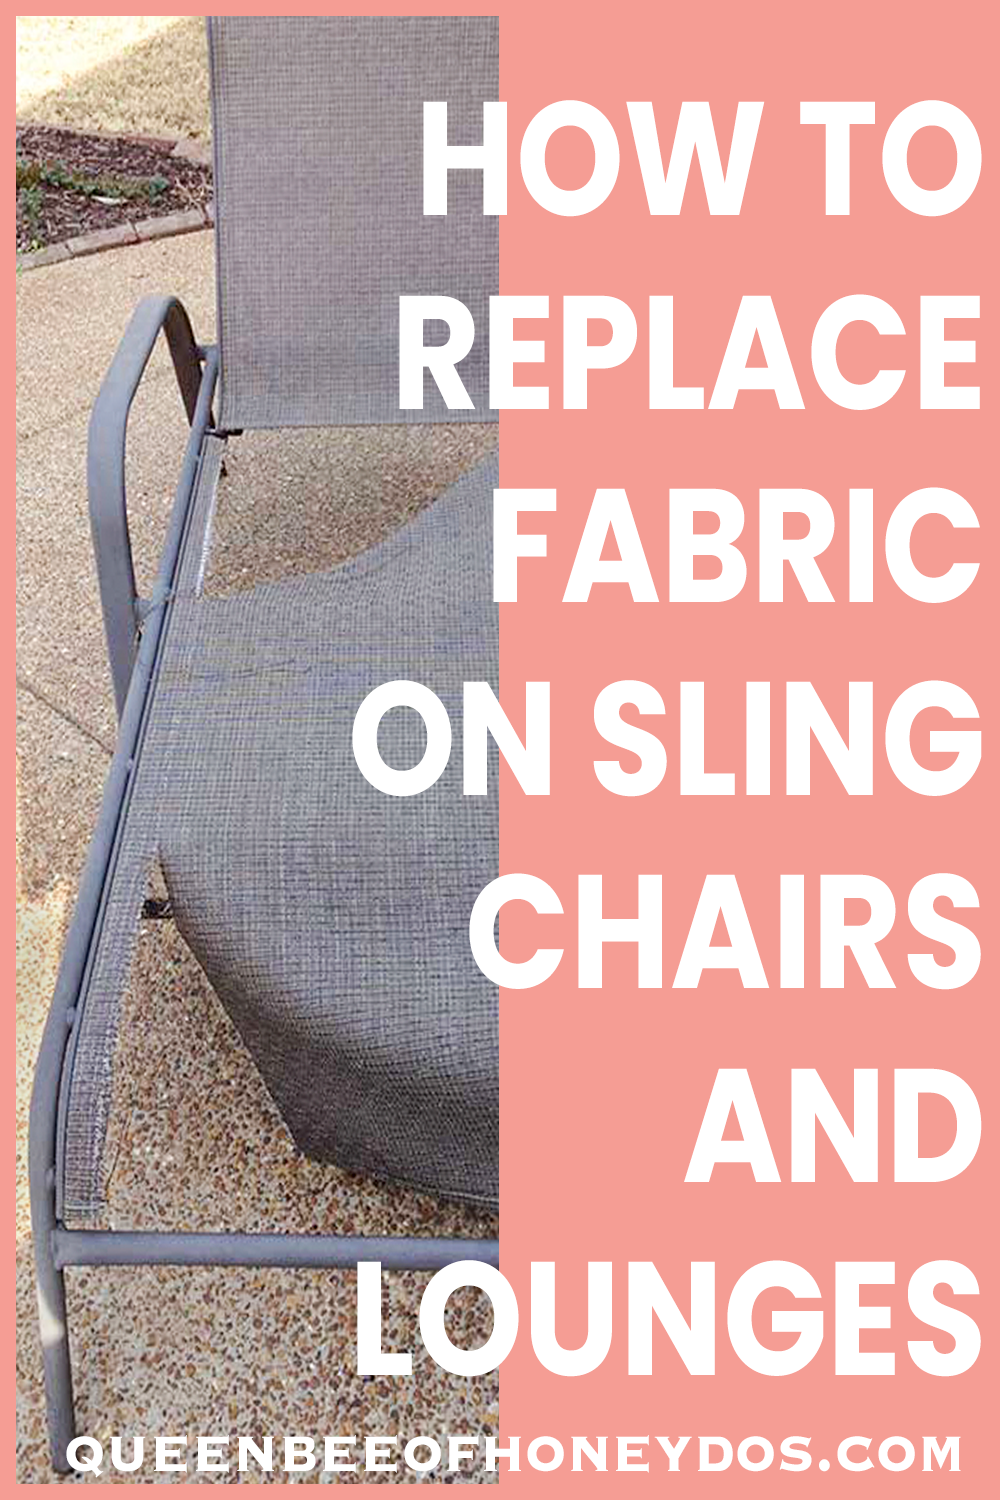 Get your sling chairs ready for spring! No need to toss those torn chairs and chaises, just make them over with new fabric. Full instructions available! #outdoor #furniture #repairs #upholstery